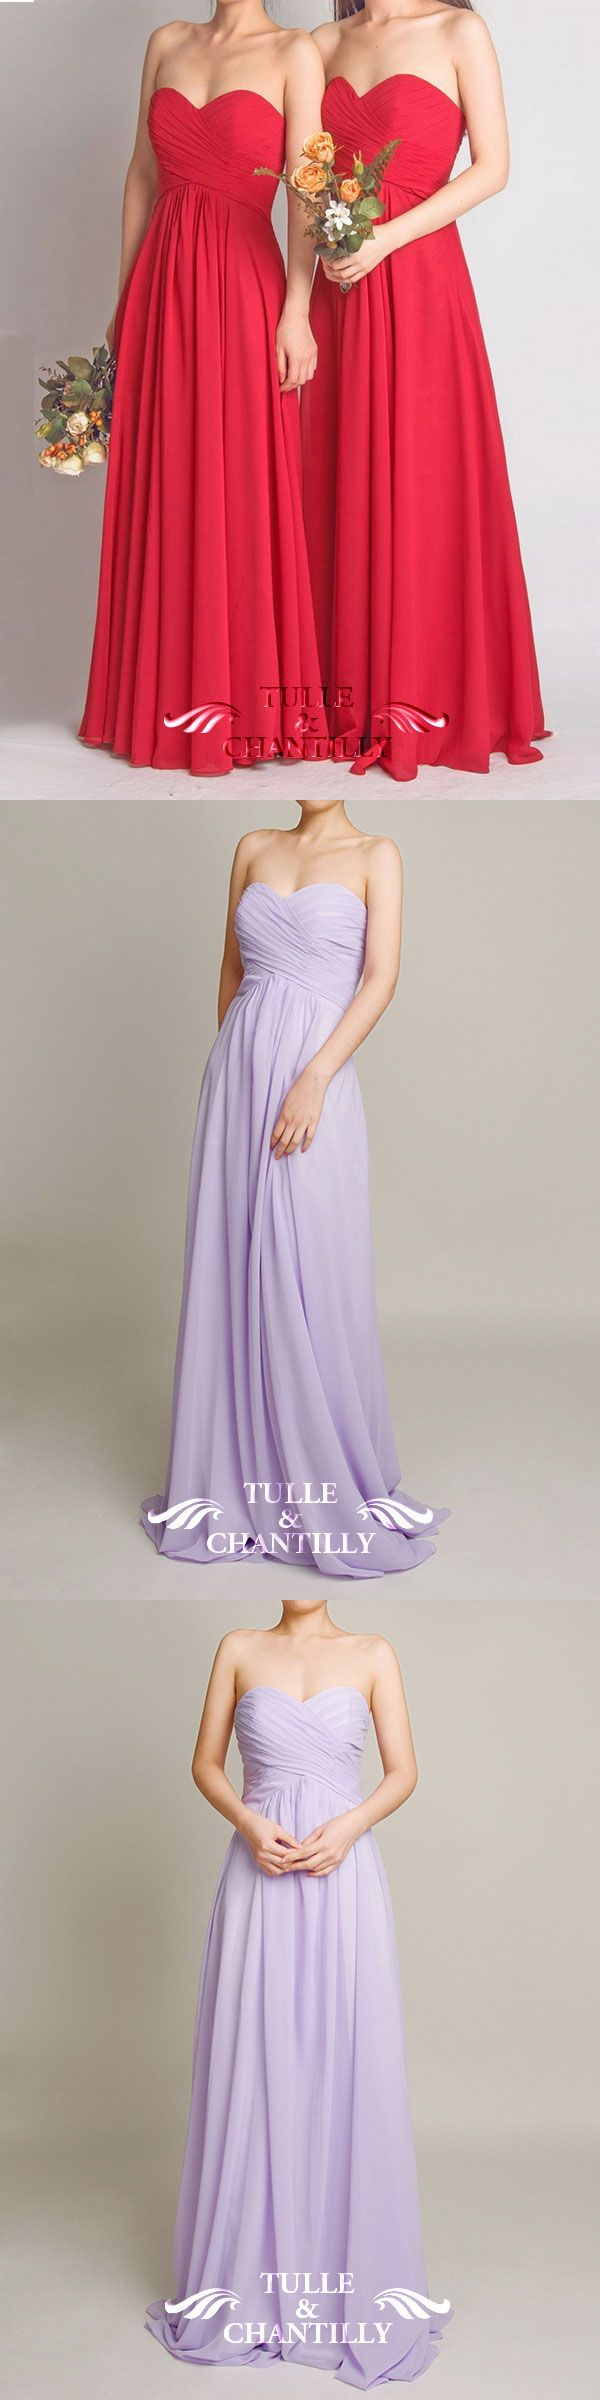 long chiffon bridesmaid dress in red and light purple for wedding 2015